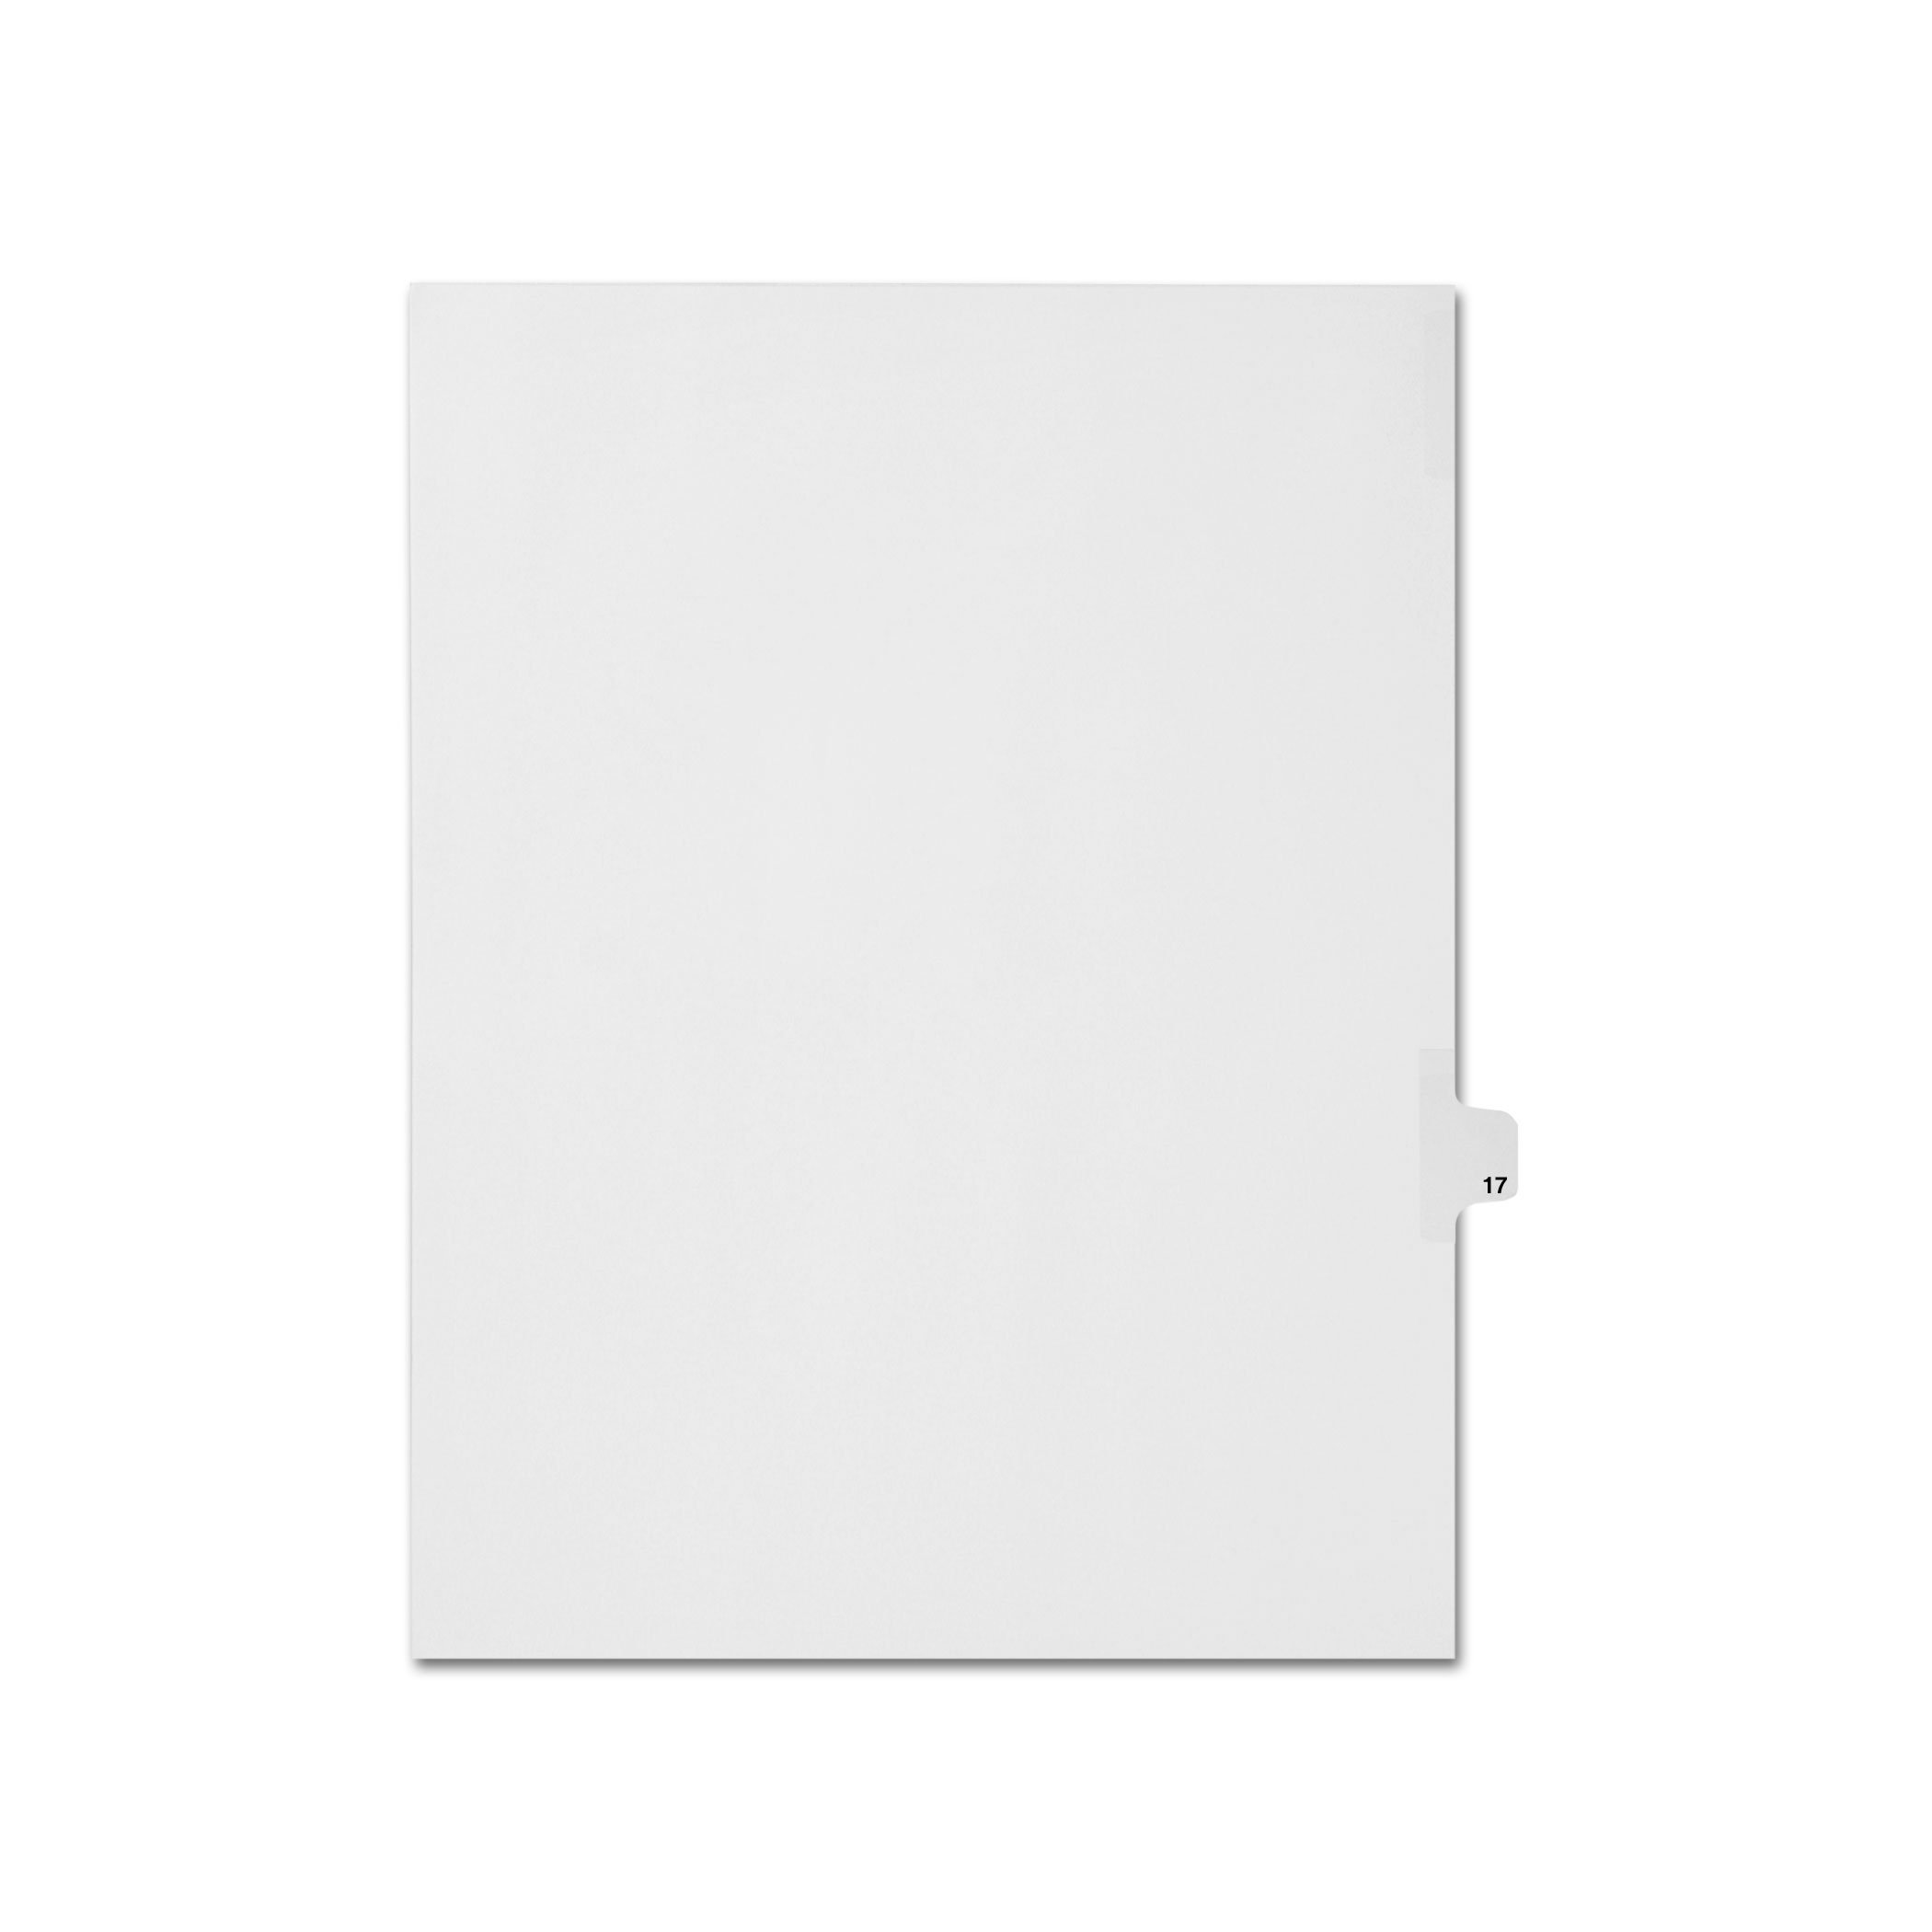 AMZfiling Individual Legal Index Tab Dividers, Compatible with Avery- Number 17, Letter Size, White, Side Tabs, Position 17 (25 Sheets/pkg)